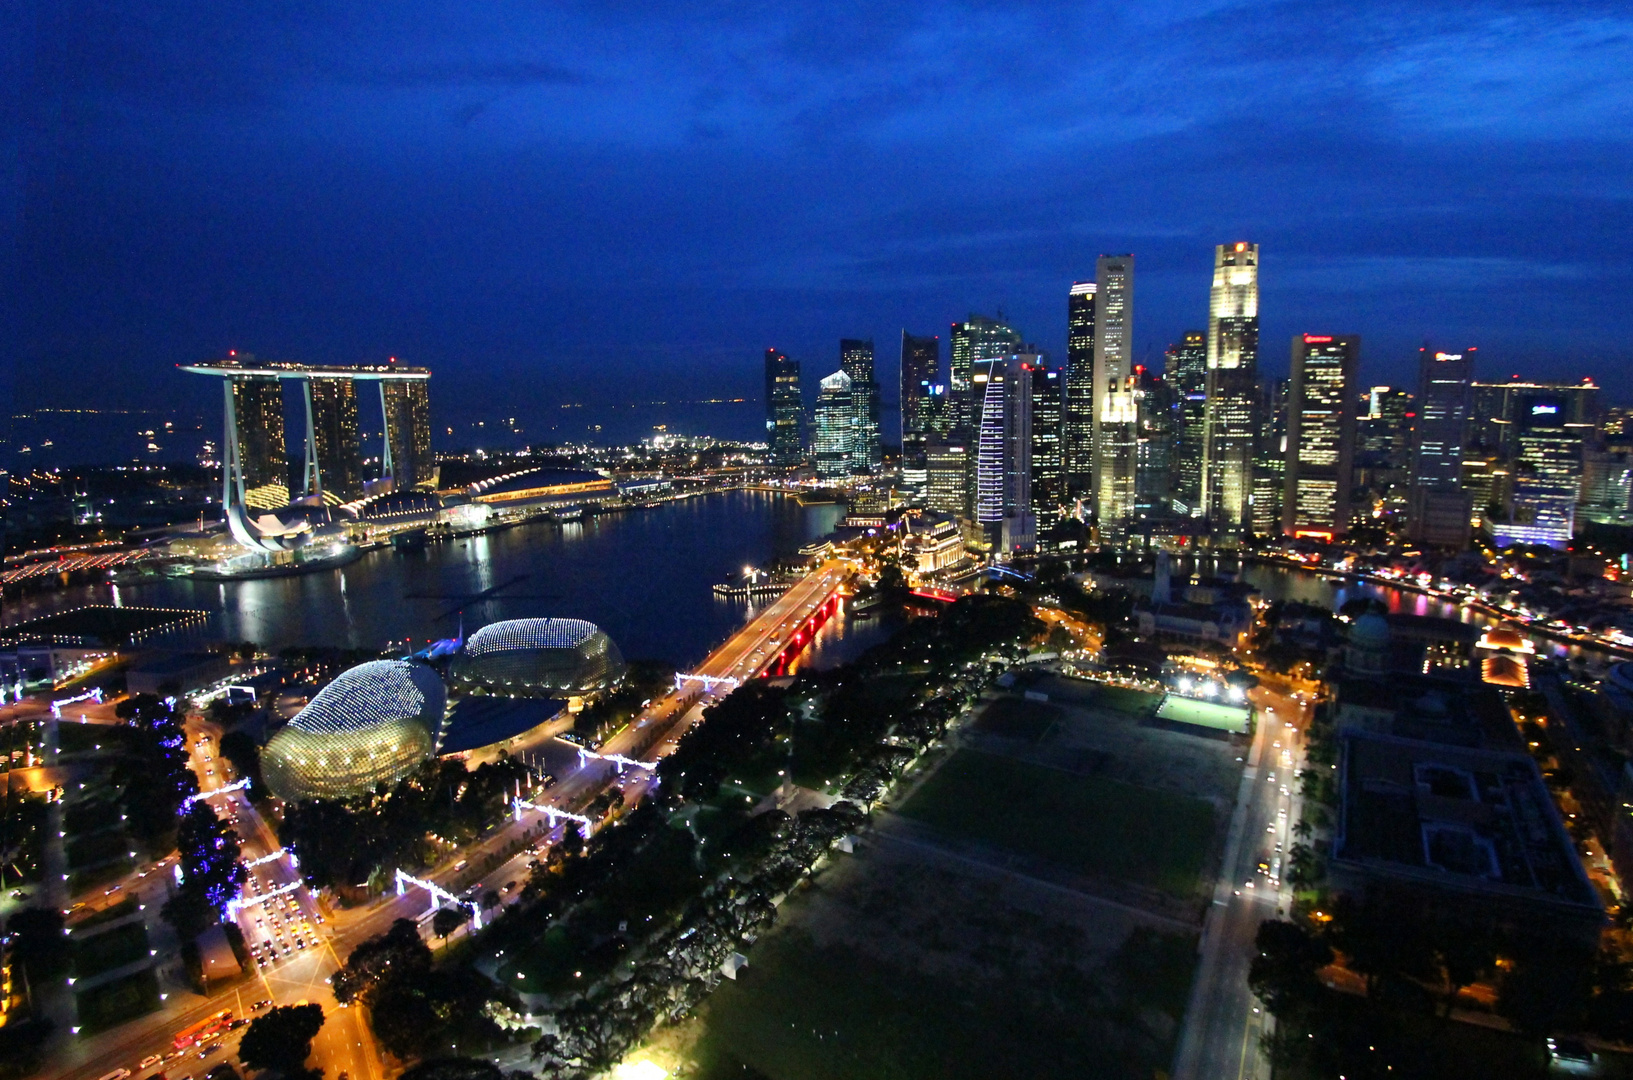 ..exclusive view from 50th floor of Swissotel-The Stamford